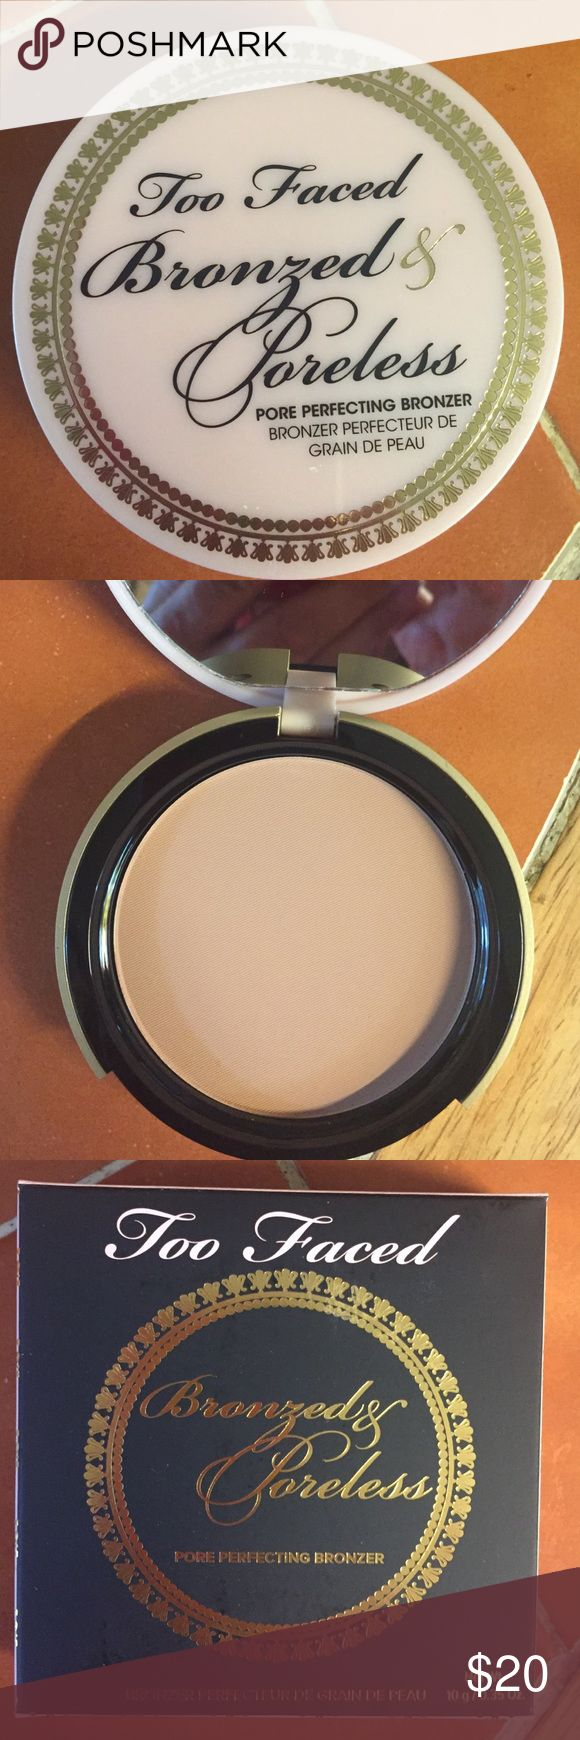 Two Faced Bronzed and Poreless NIB Two Faced Bronzed and Poreless pore perfecting face cream. Two Faced Makeup Bronzer